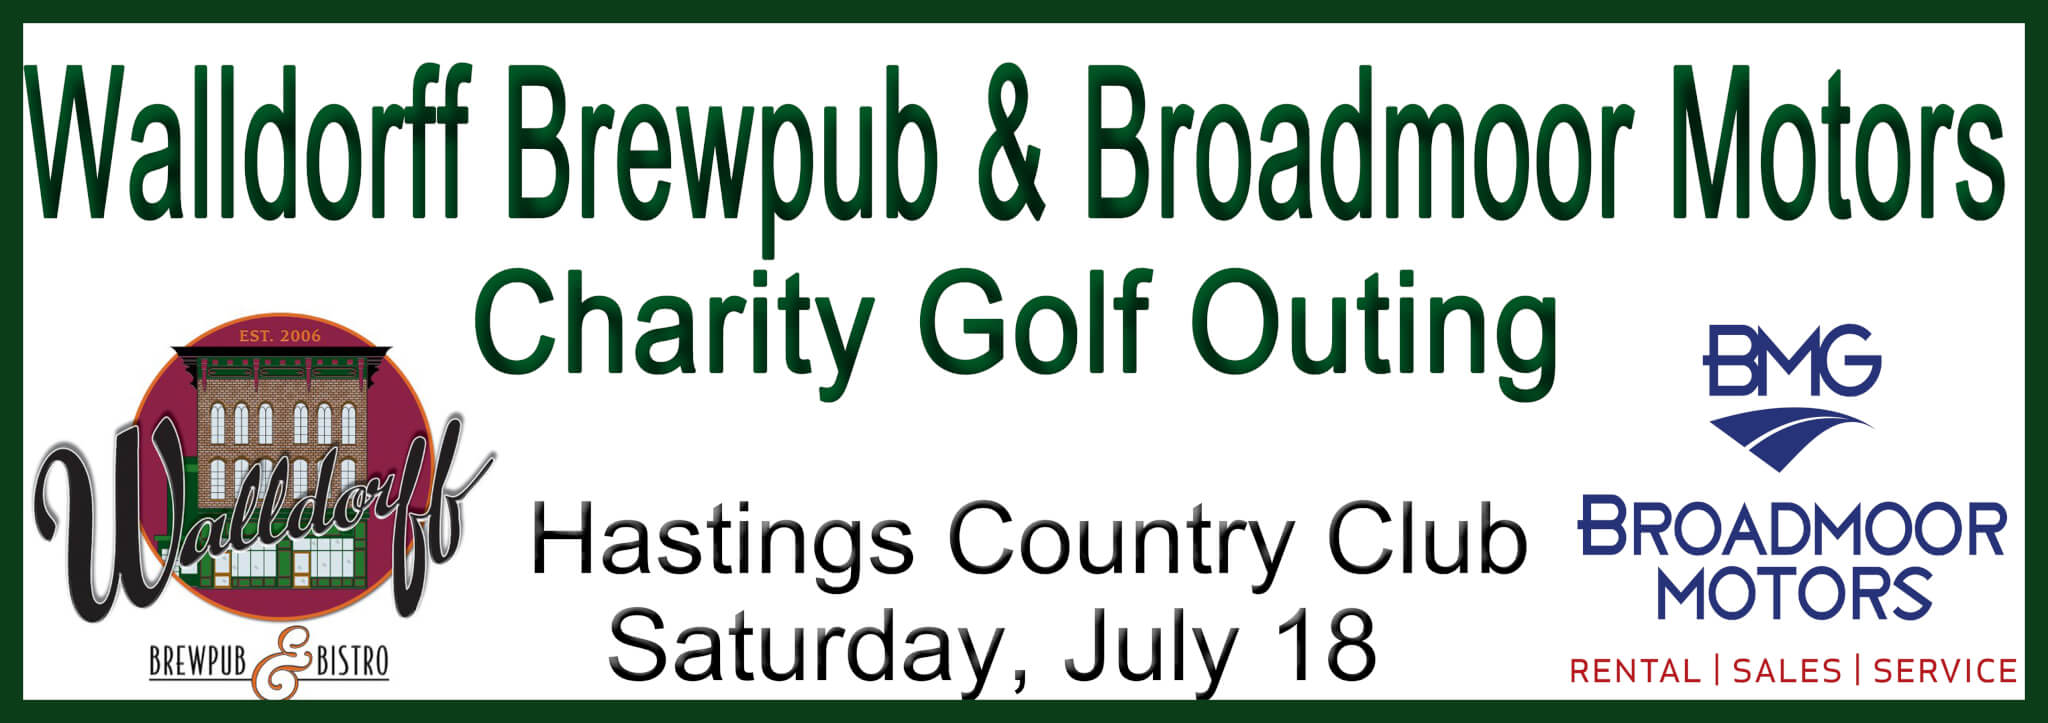 Golf Outing Website Banner Frame